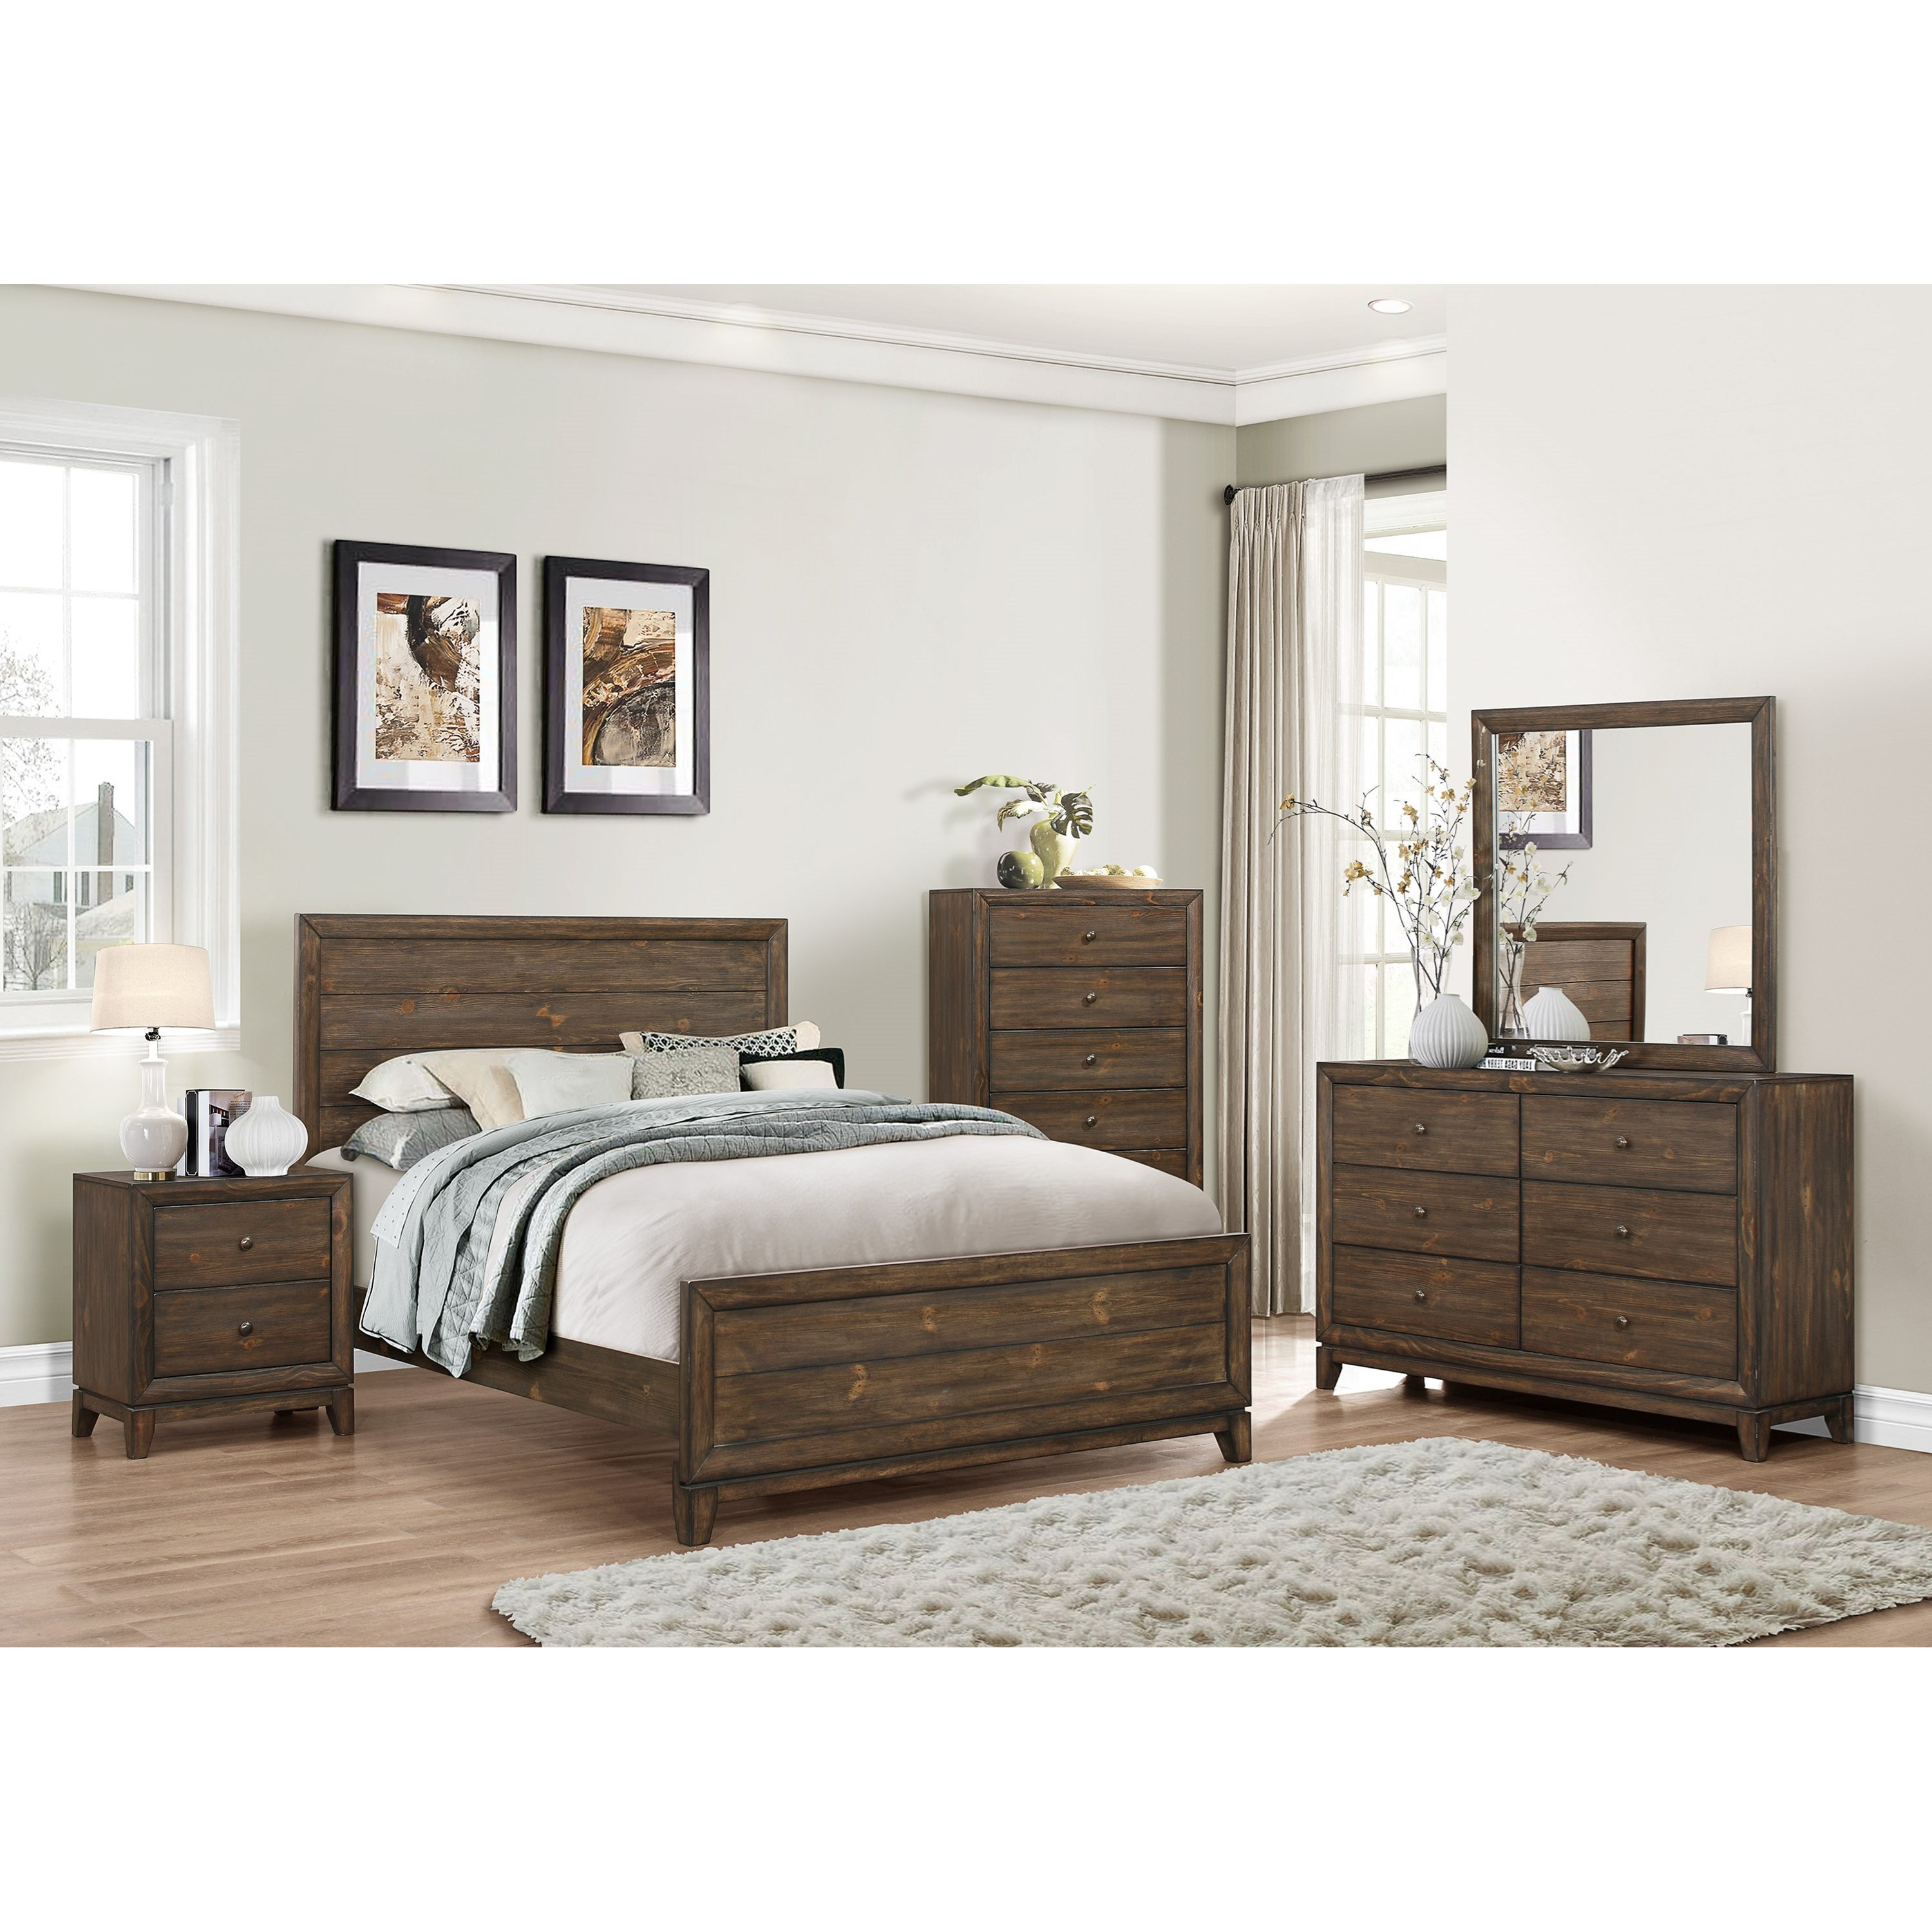 Crown Mark Rhone Queen Bedroom Group - Item Number: B8700 Q Bedroom Group 1